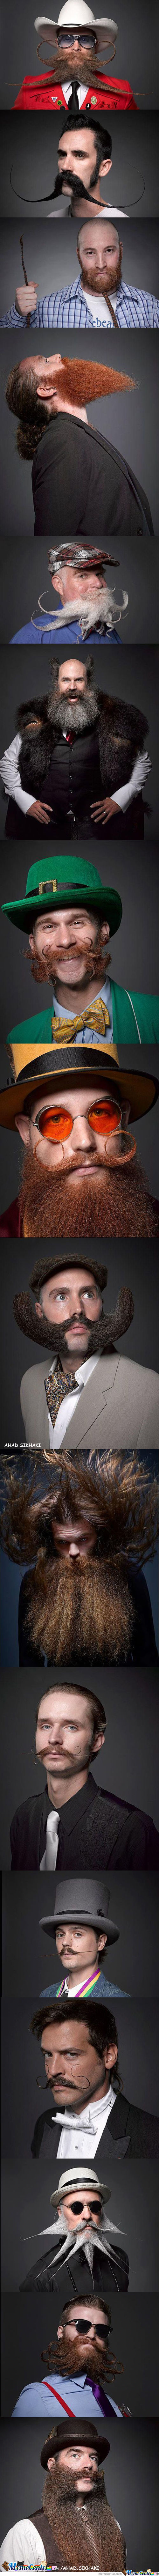 Epic Portraits From The National Beard And Mustache Championships